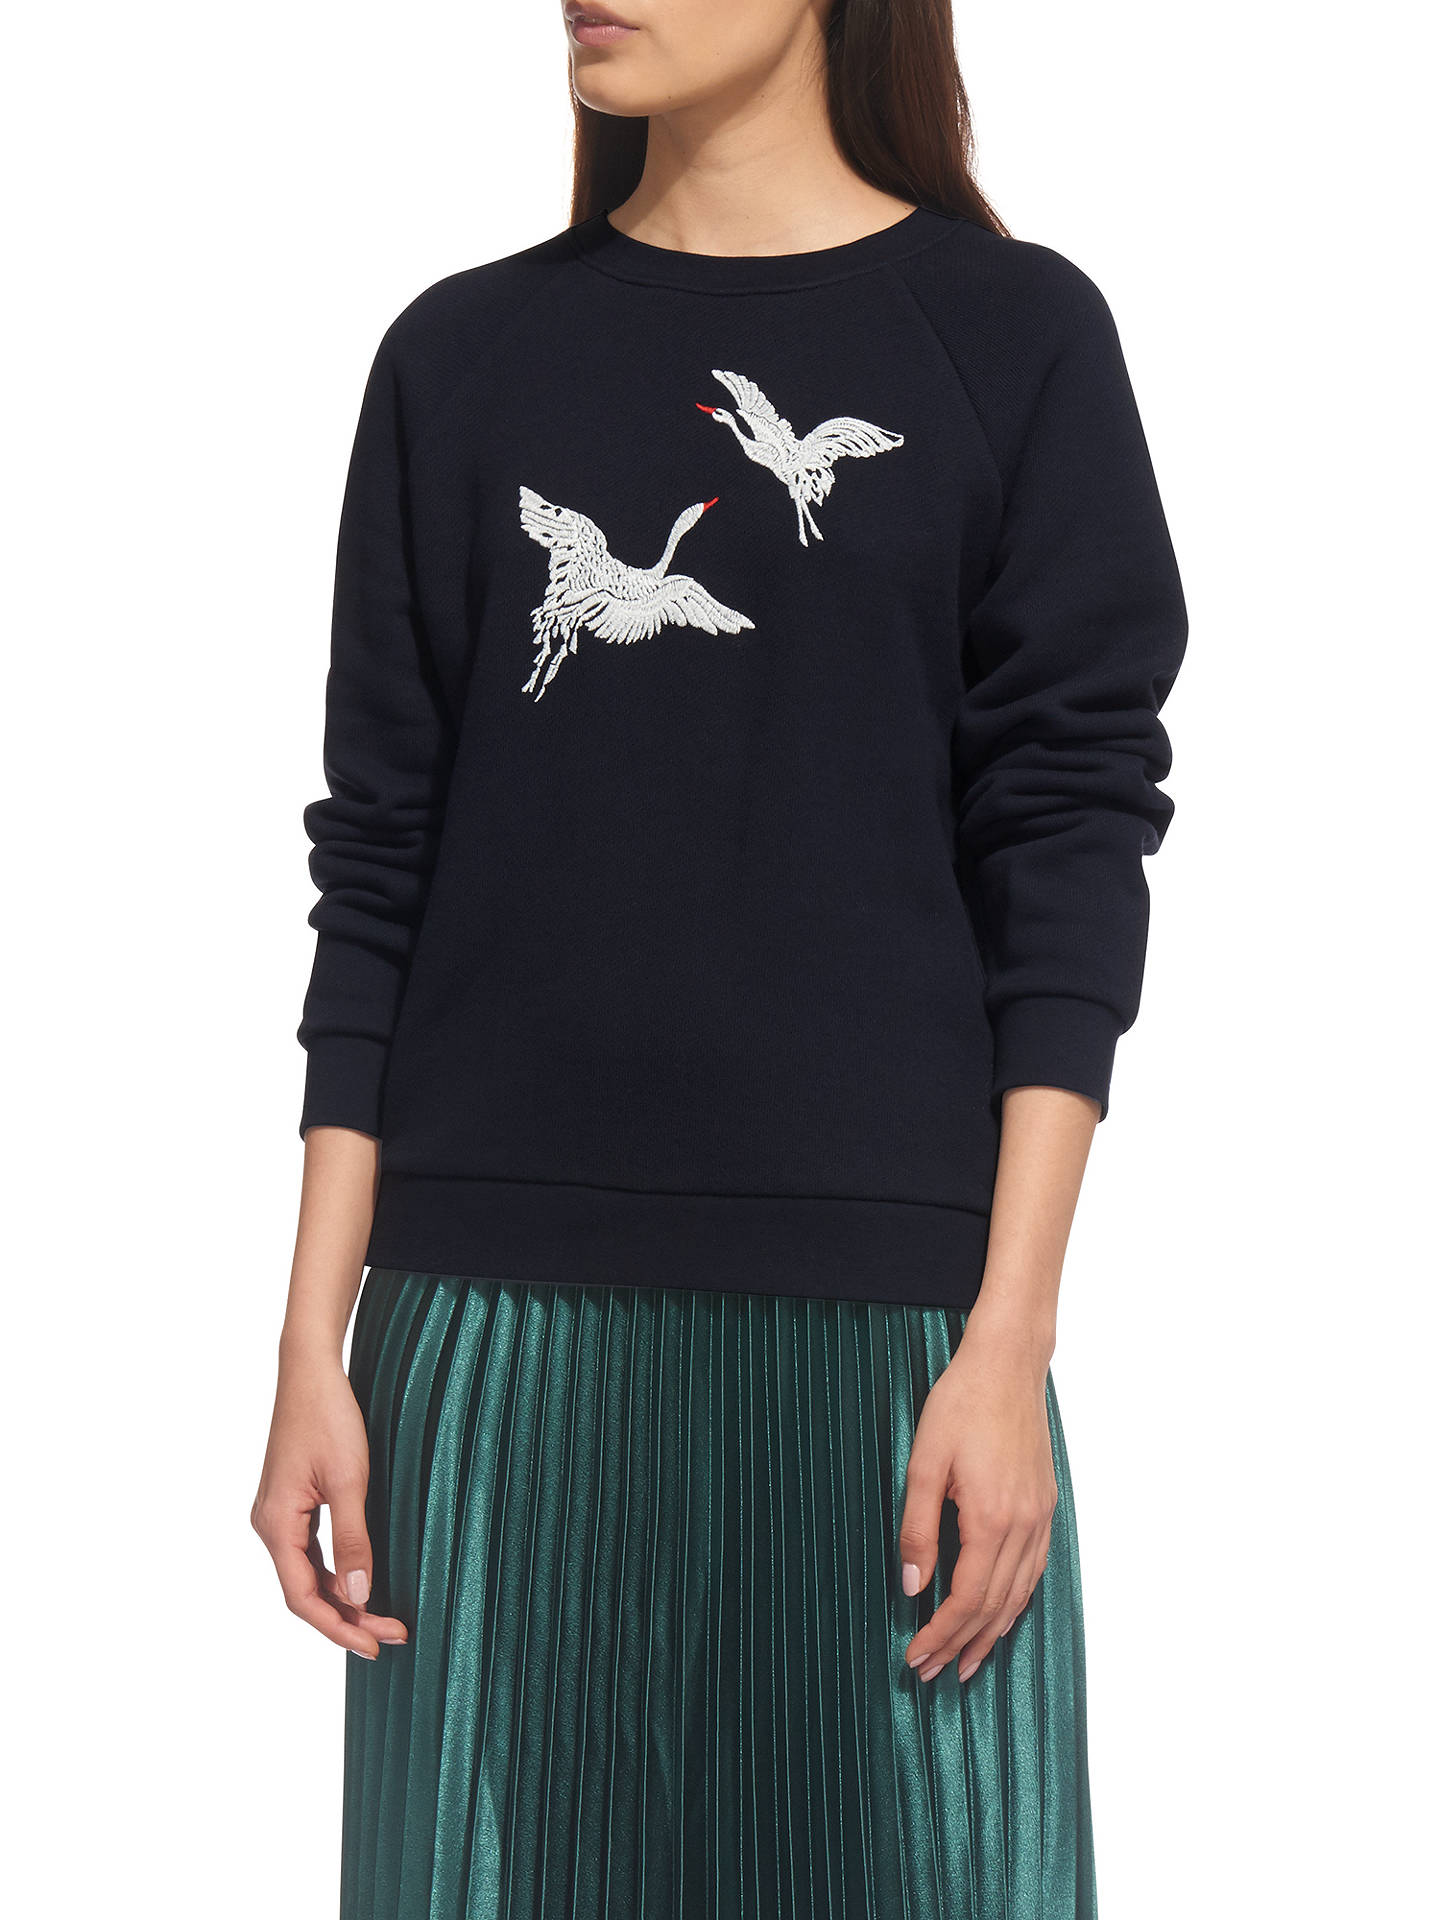 BuyWhistles Crane Embroidered Sweat Top, Navy, XS Online at johnlewis.com